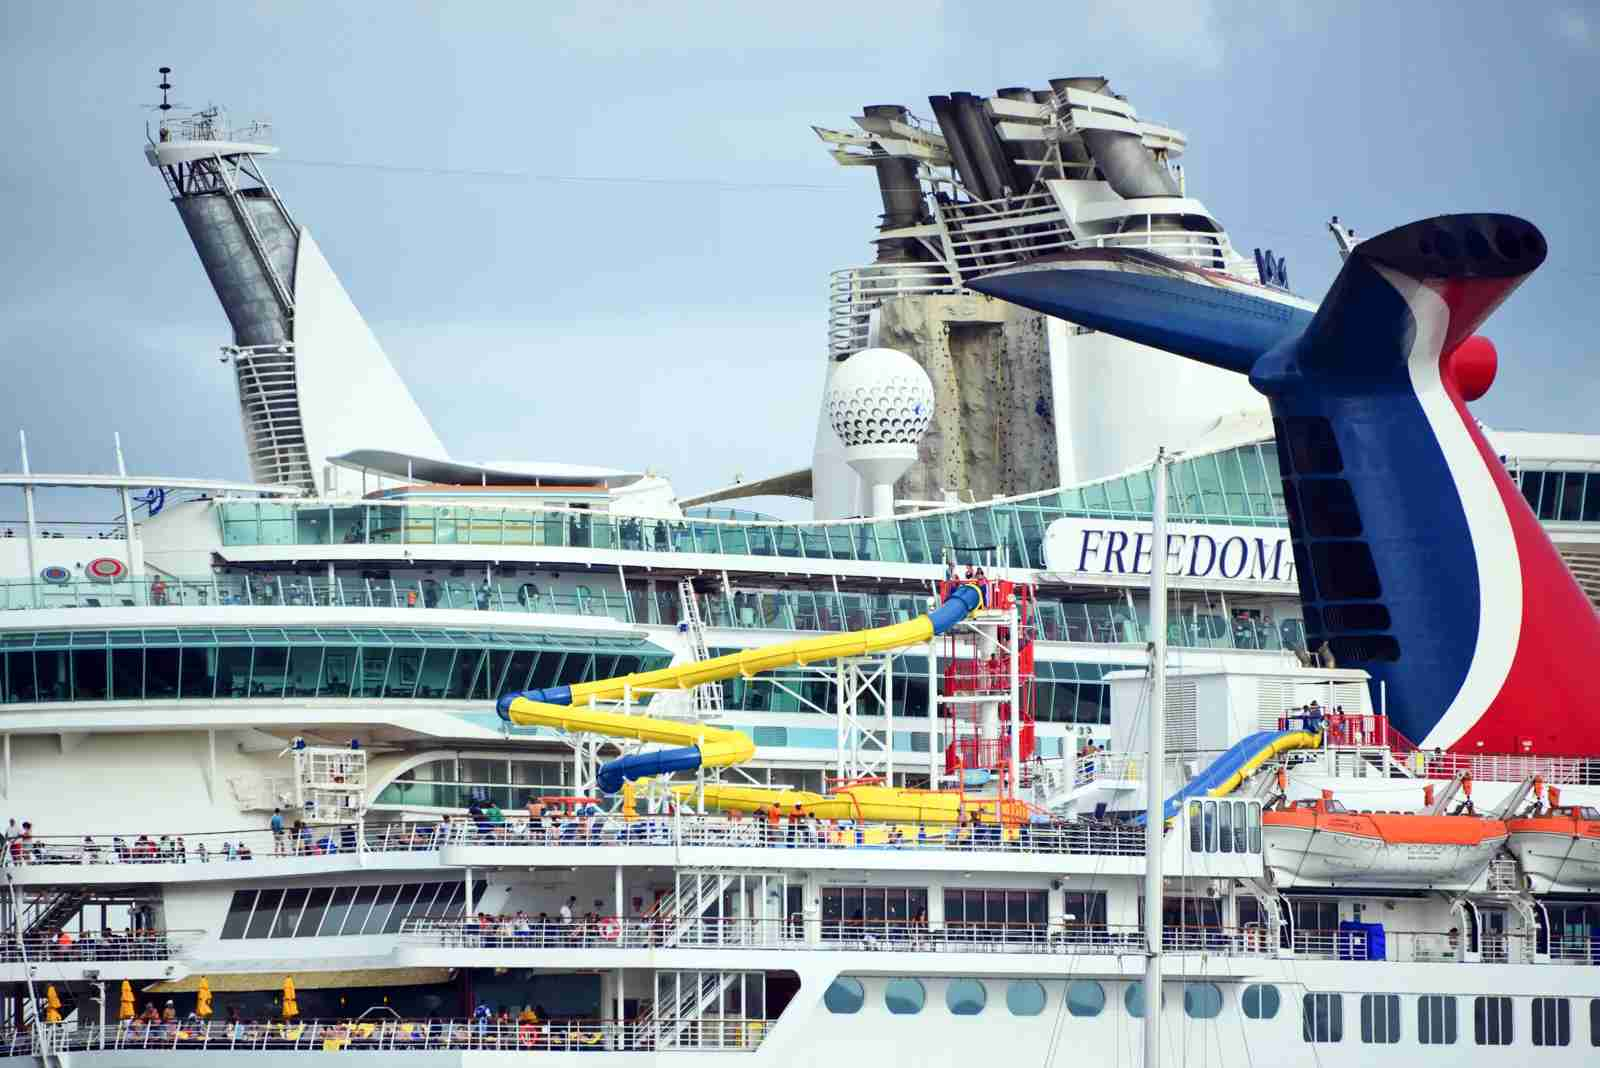 Passengers enjoying a water park on the cruise ship Carnival Fascination. (Photo via Getty Images)